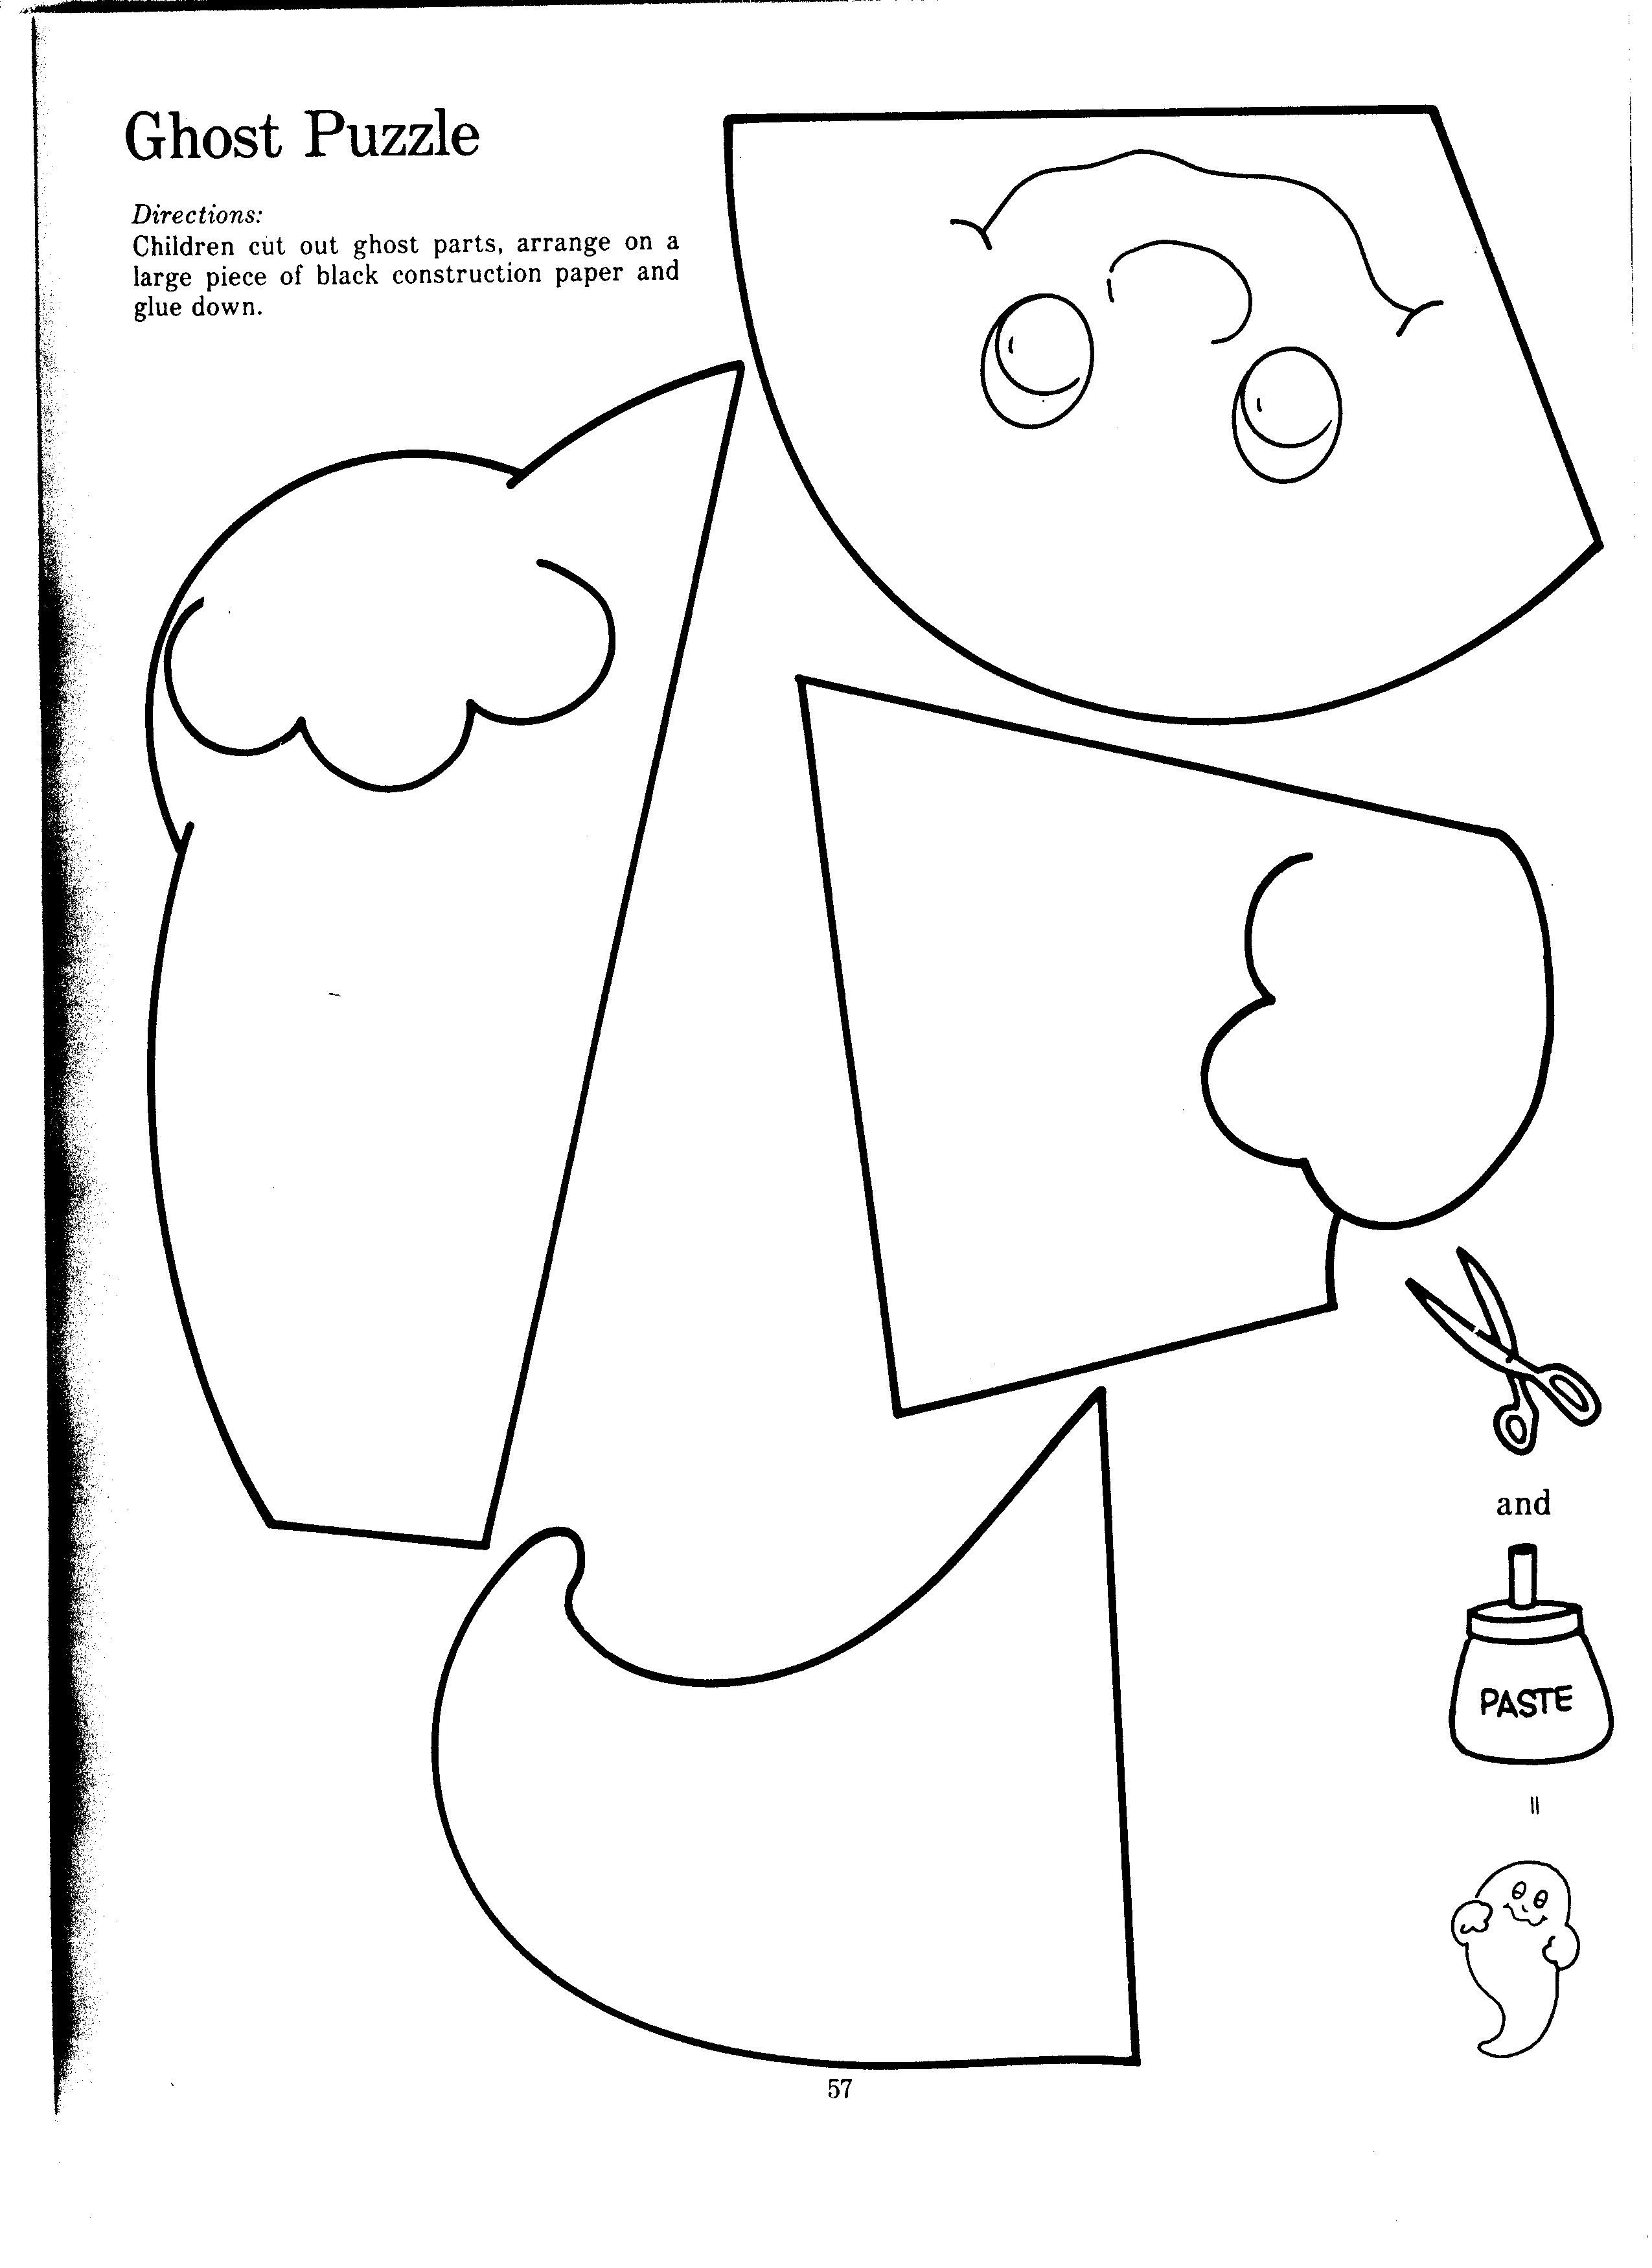 Ghost puzzle Halloween Early childhood curriculums